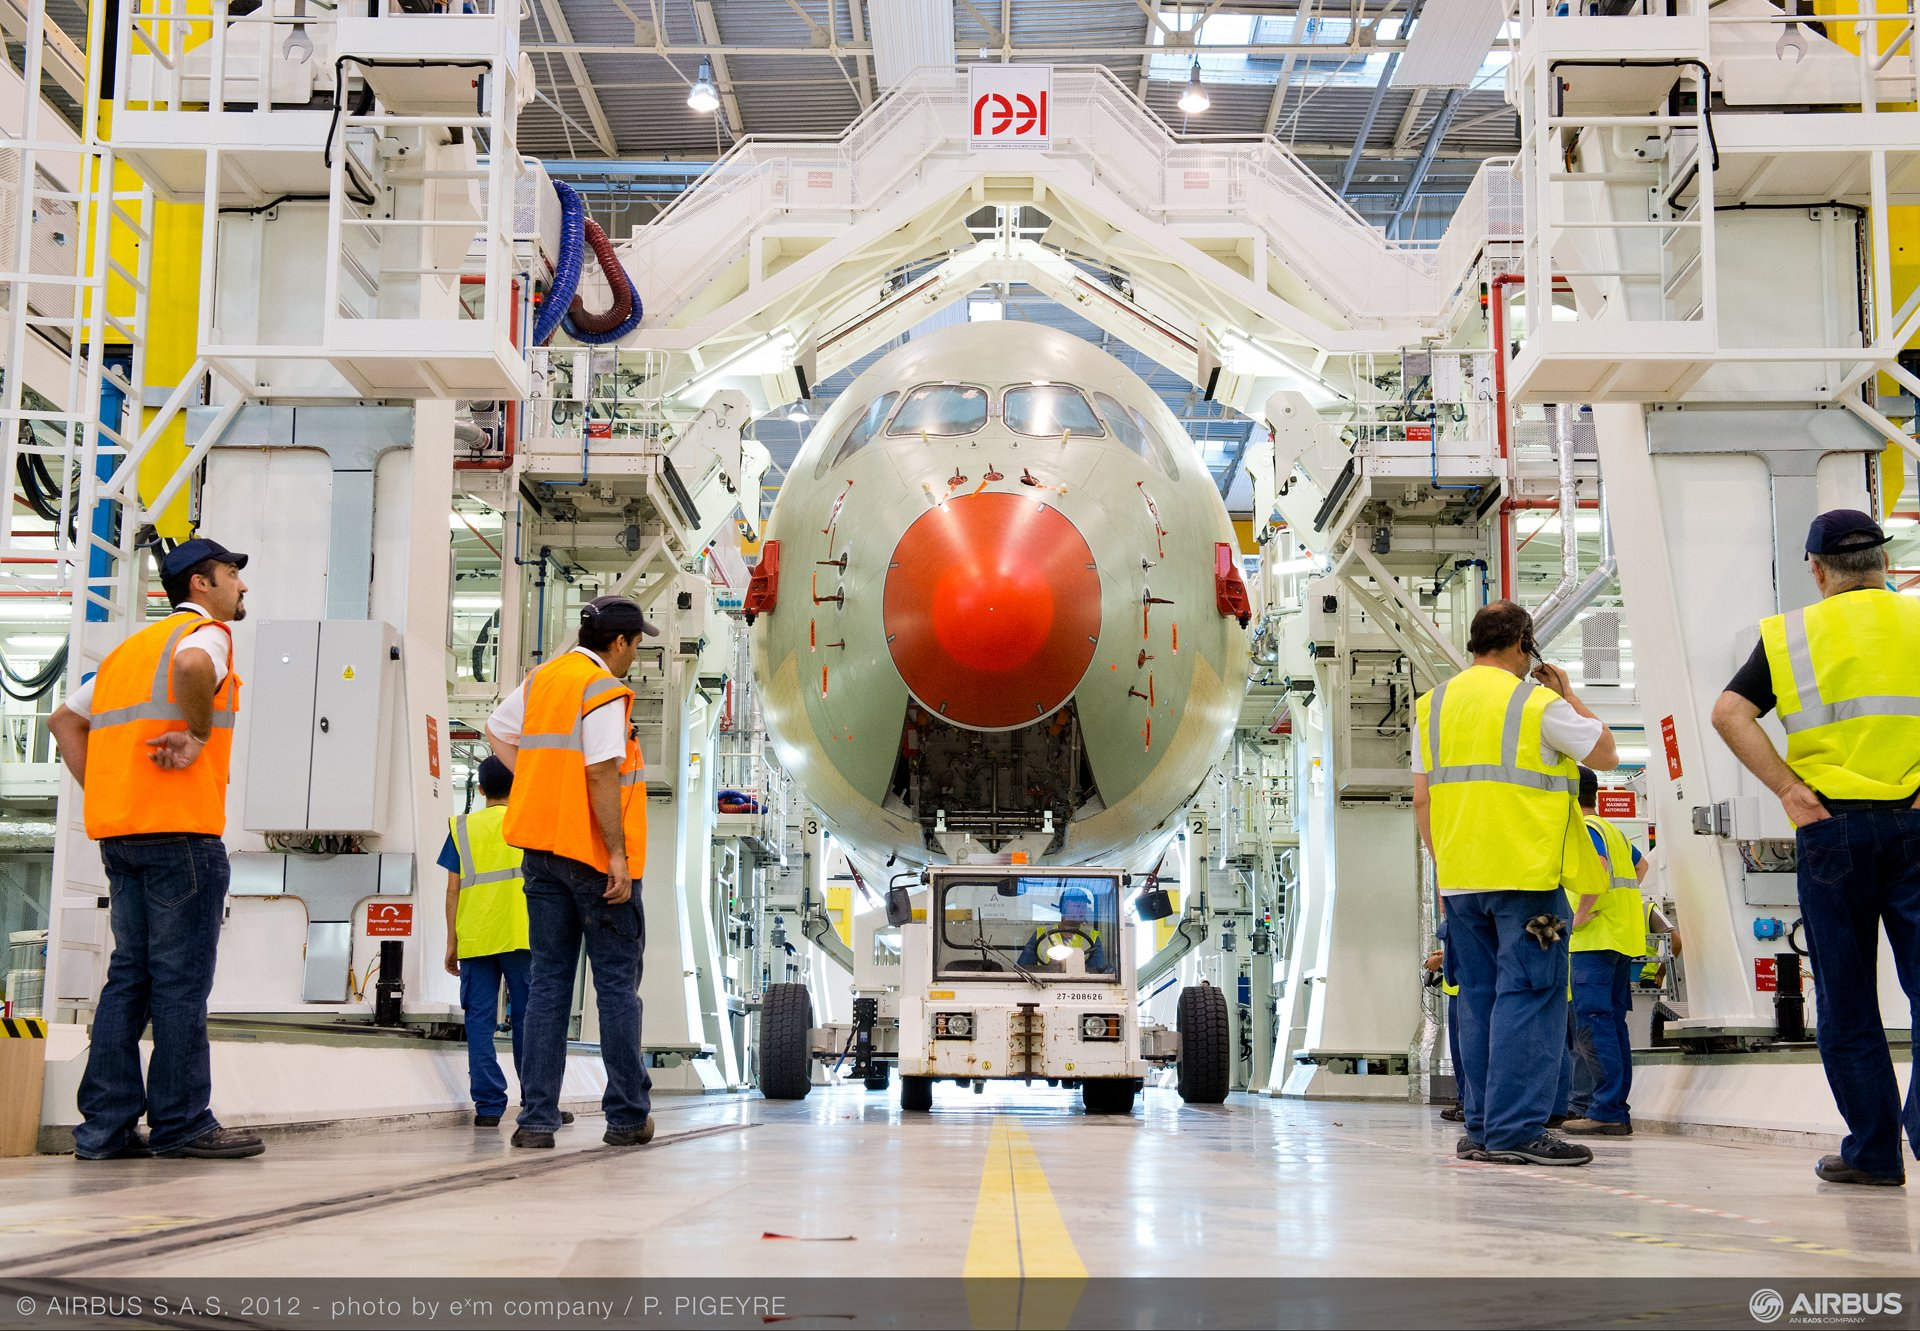 Read about Airbus' worldwide final assembly lines in more depth